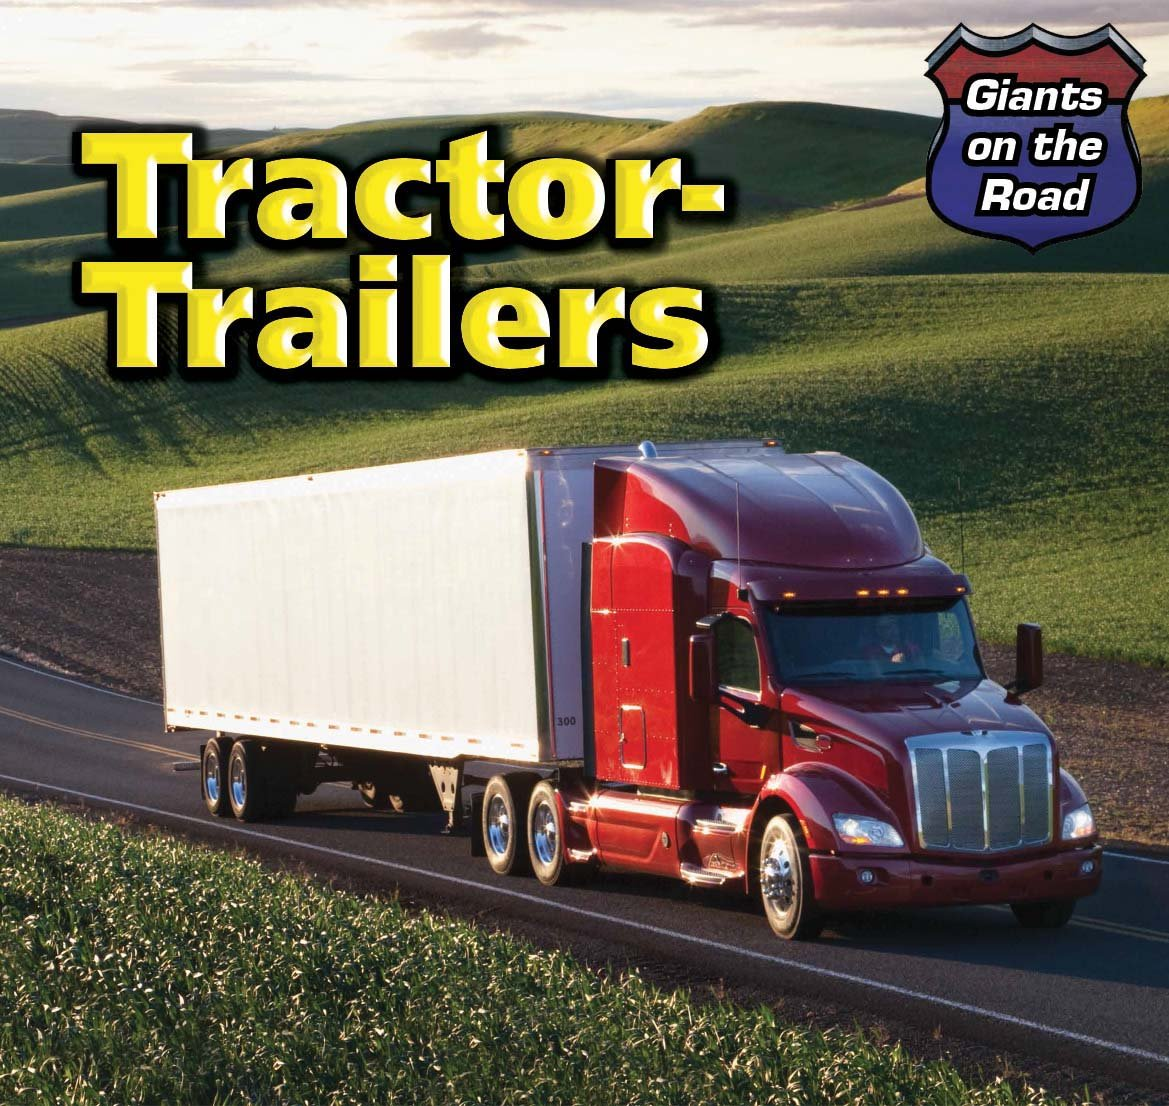 Tractor-Trailers (Giants on the Road)